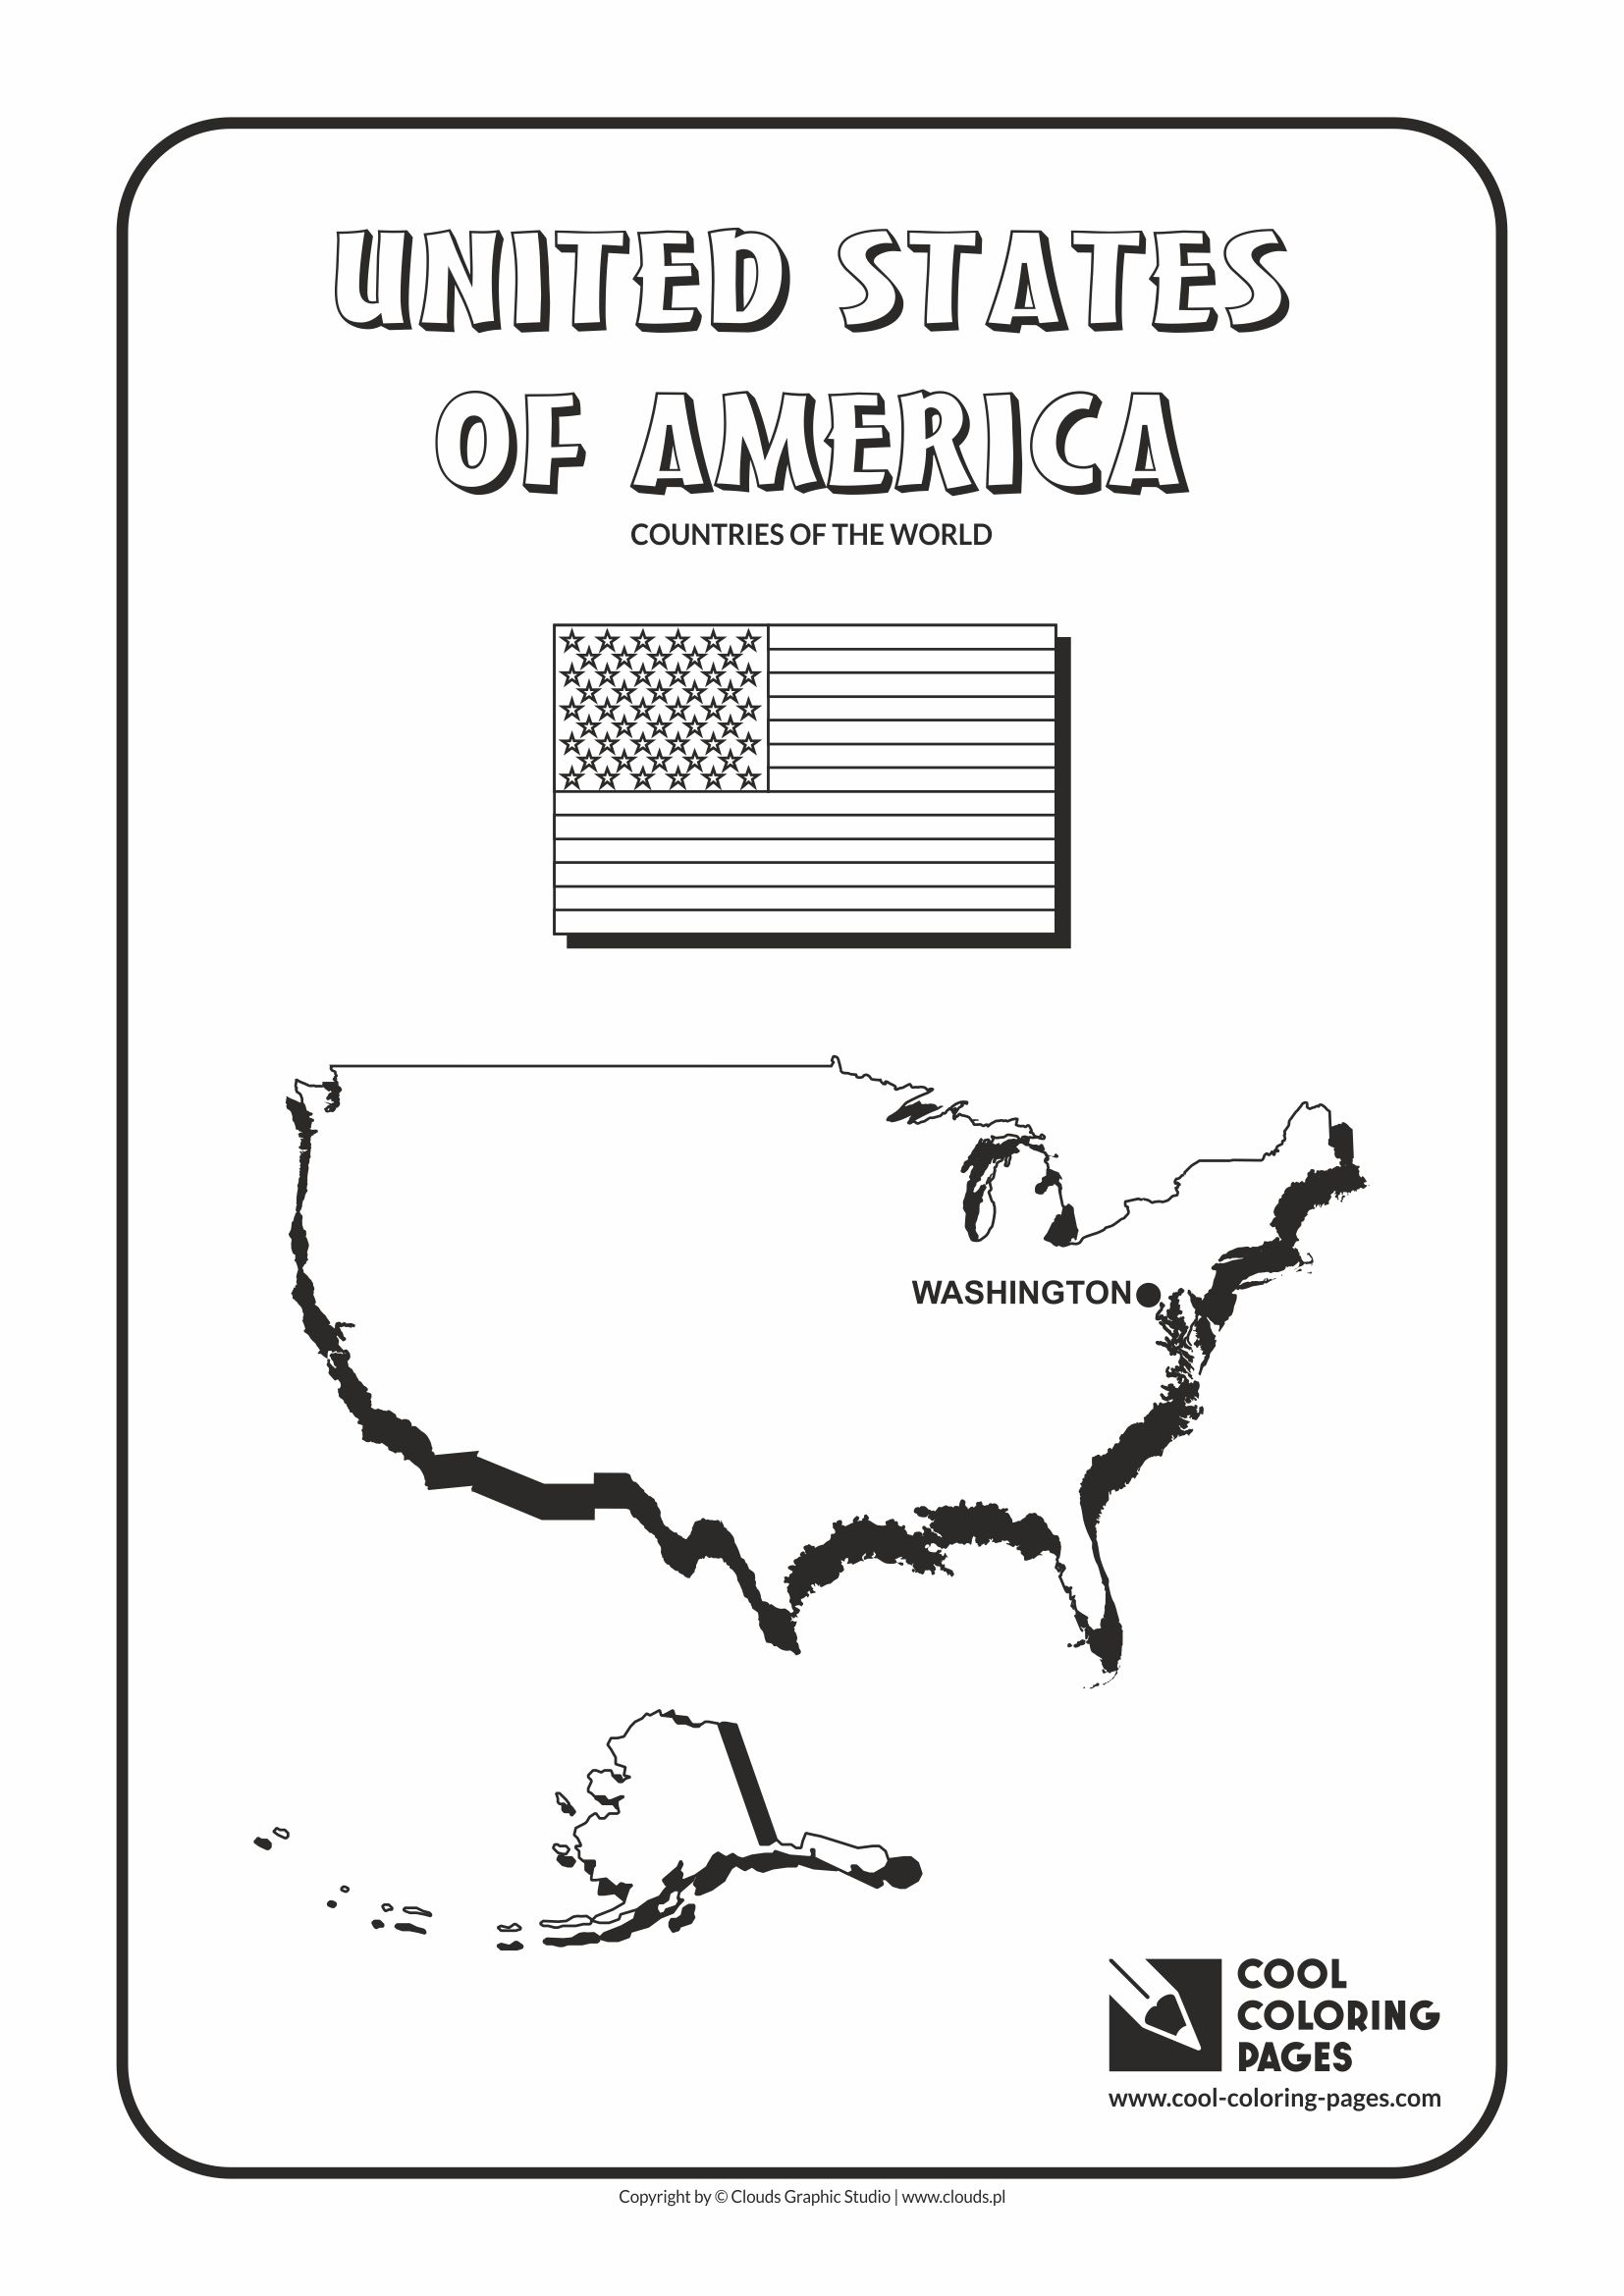 Cool Coloring Pages - Countries of the world / USA